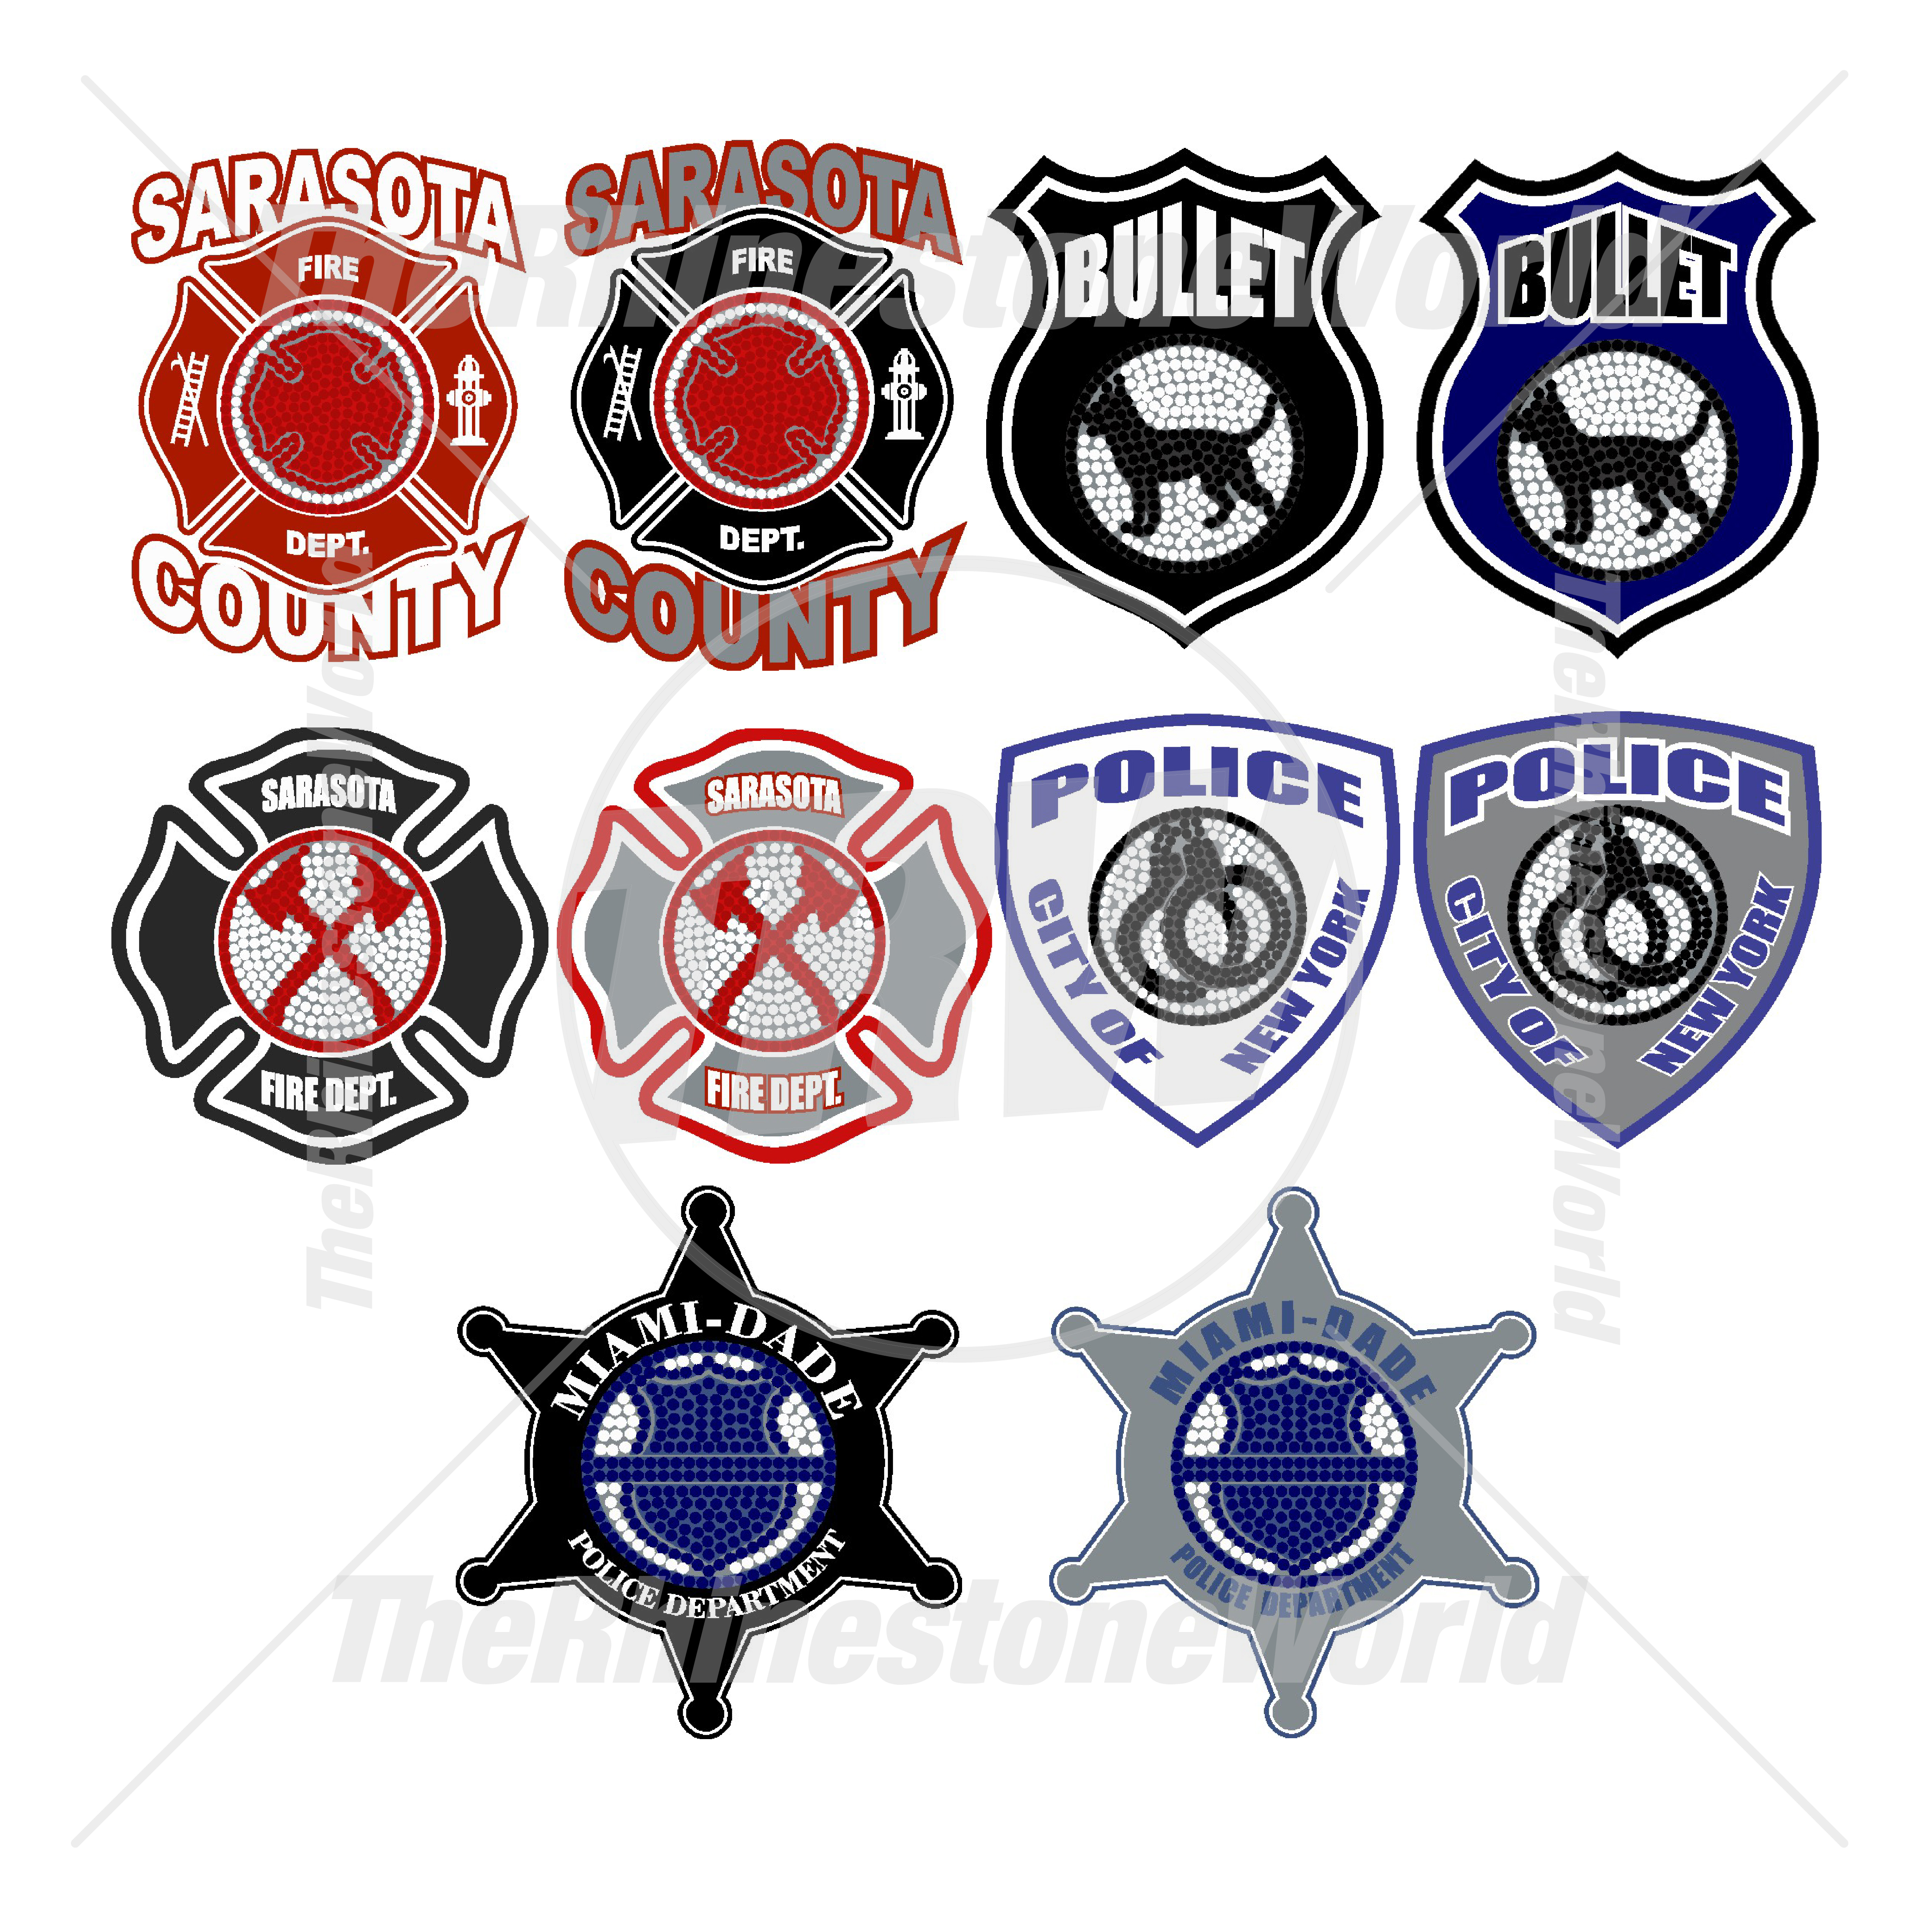 First responder clipart jpg royalty free Rhinestone Decal LT First Responder Mini Pack jpg royalty free